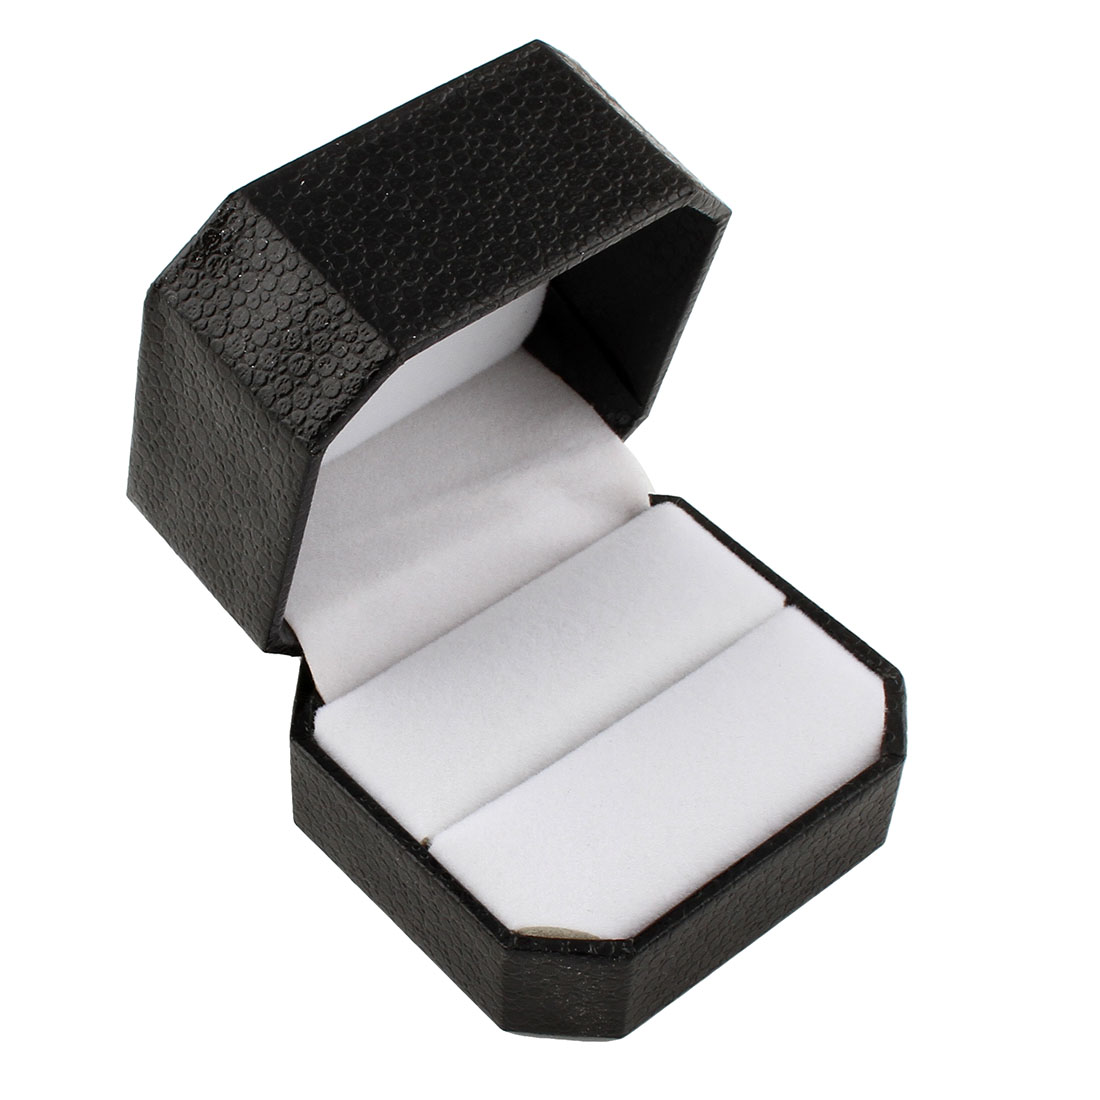 Ring Box Wholesale /Bag Pu Leather & Paper Engagement Wedding Earring Storage Foldable Case Ring Box Pendant Jewelry Display